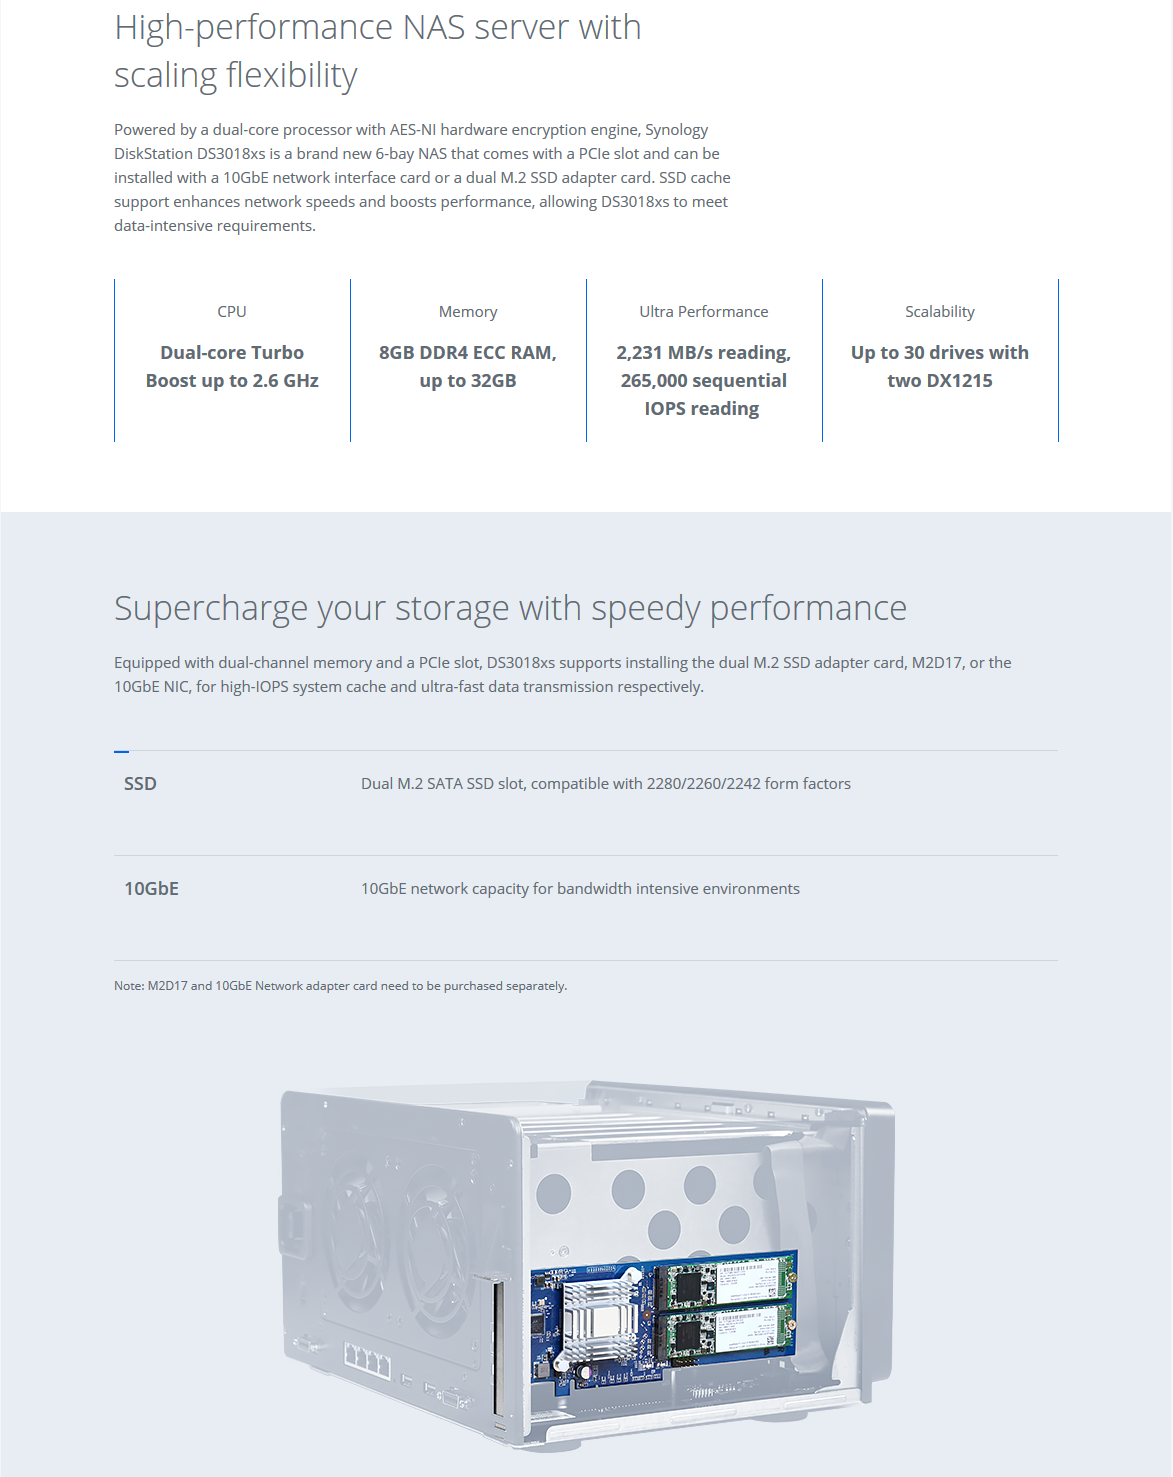 Synology DS3018xs DiskStation Preconfigured with 32GB RAM and 36TB